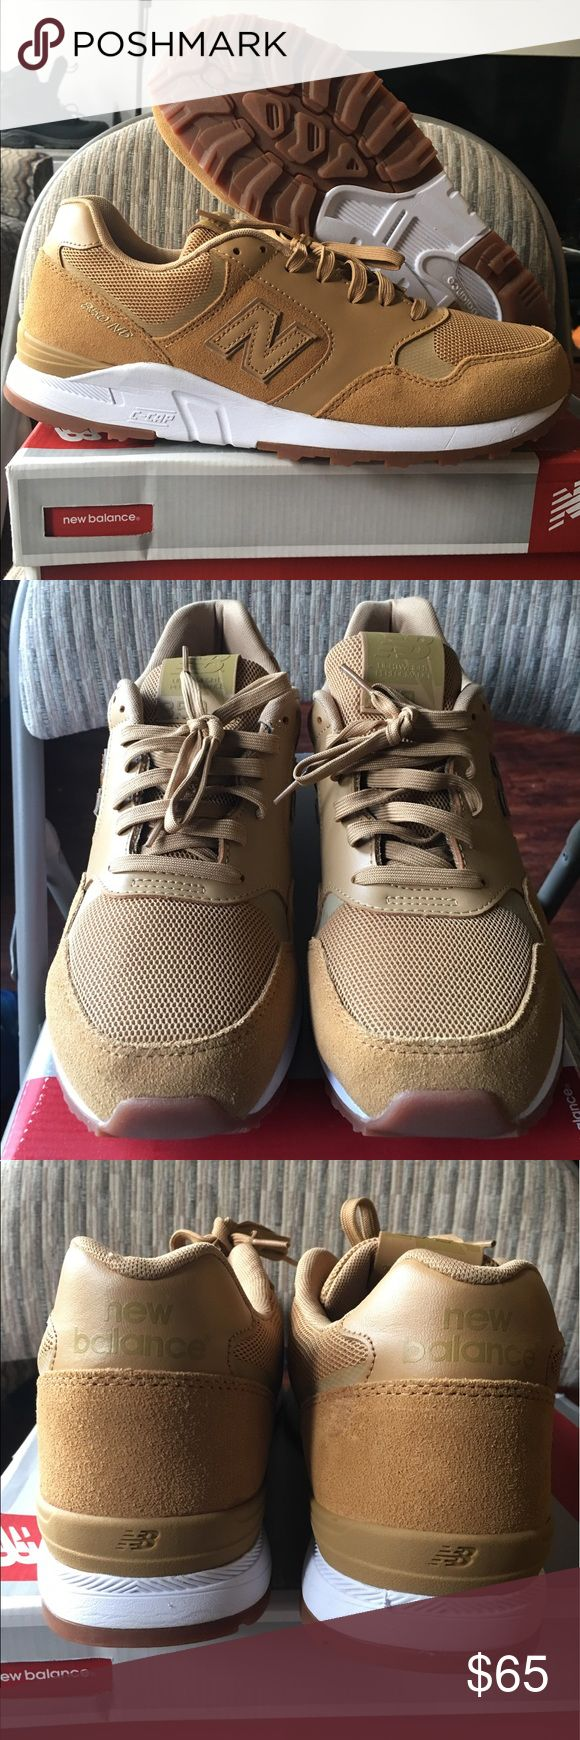 New Balance 850 sz 12 Brand new Mens sz 12 wheat color New Balance Shoes Sneakers